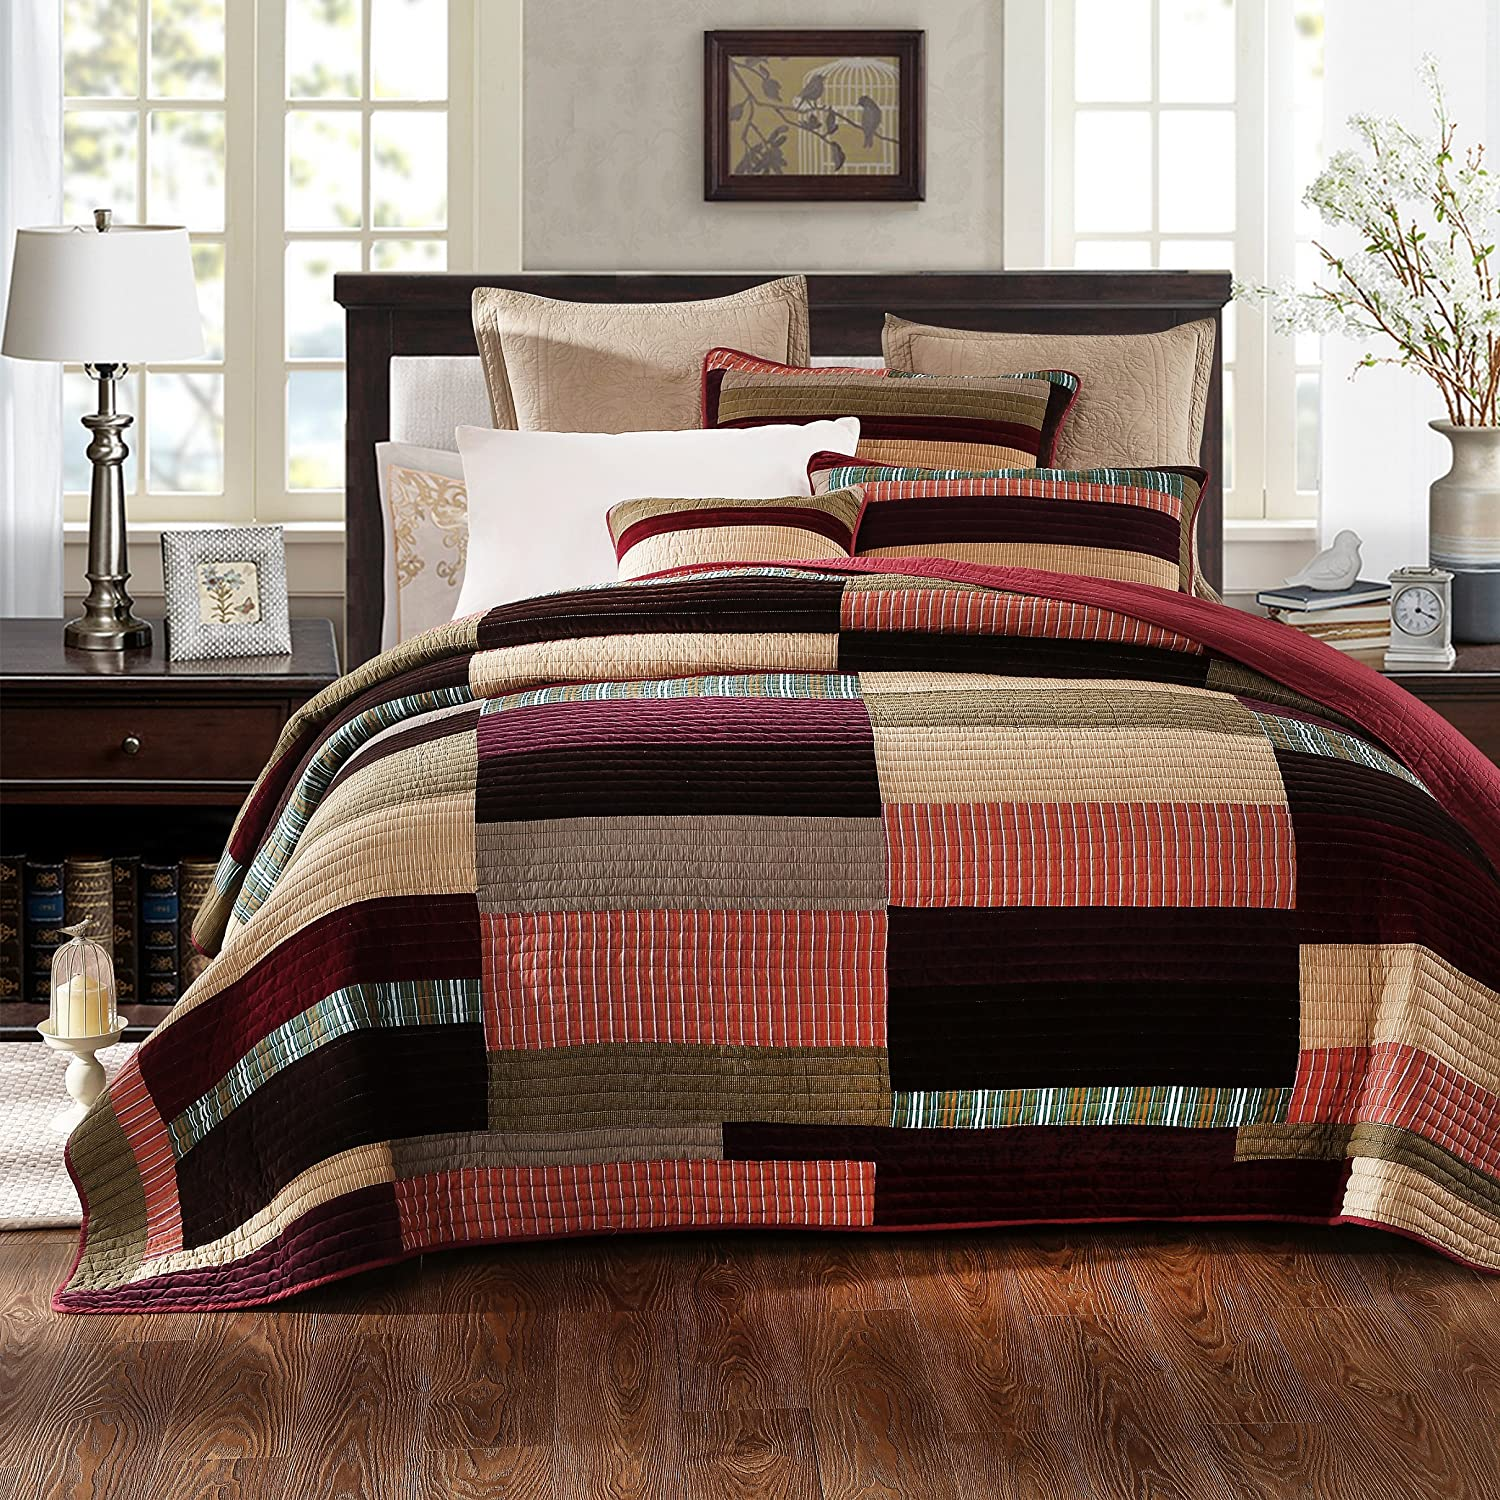 DaDa Bedding Classical Desert Sands Reversible Real Patchwork Quilted Bedspread Set